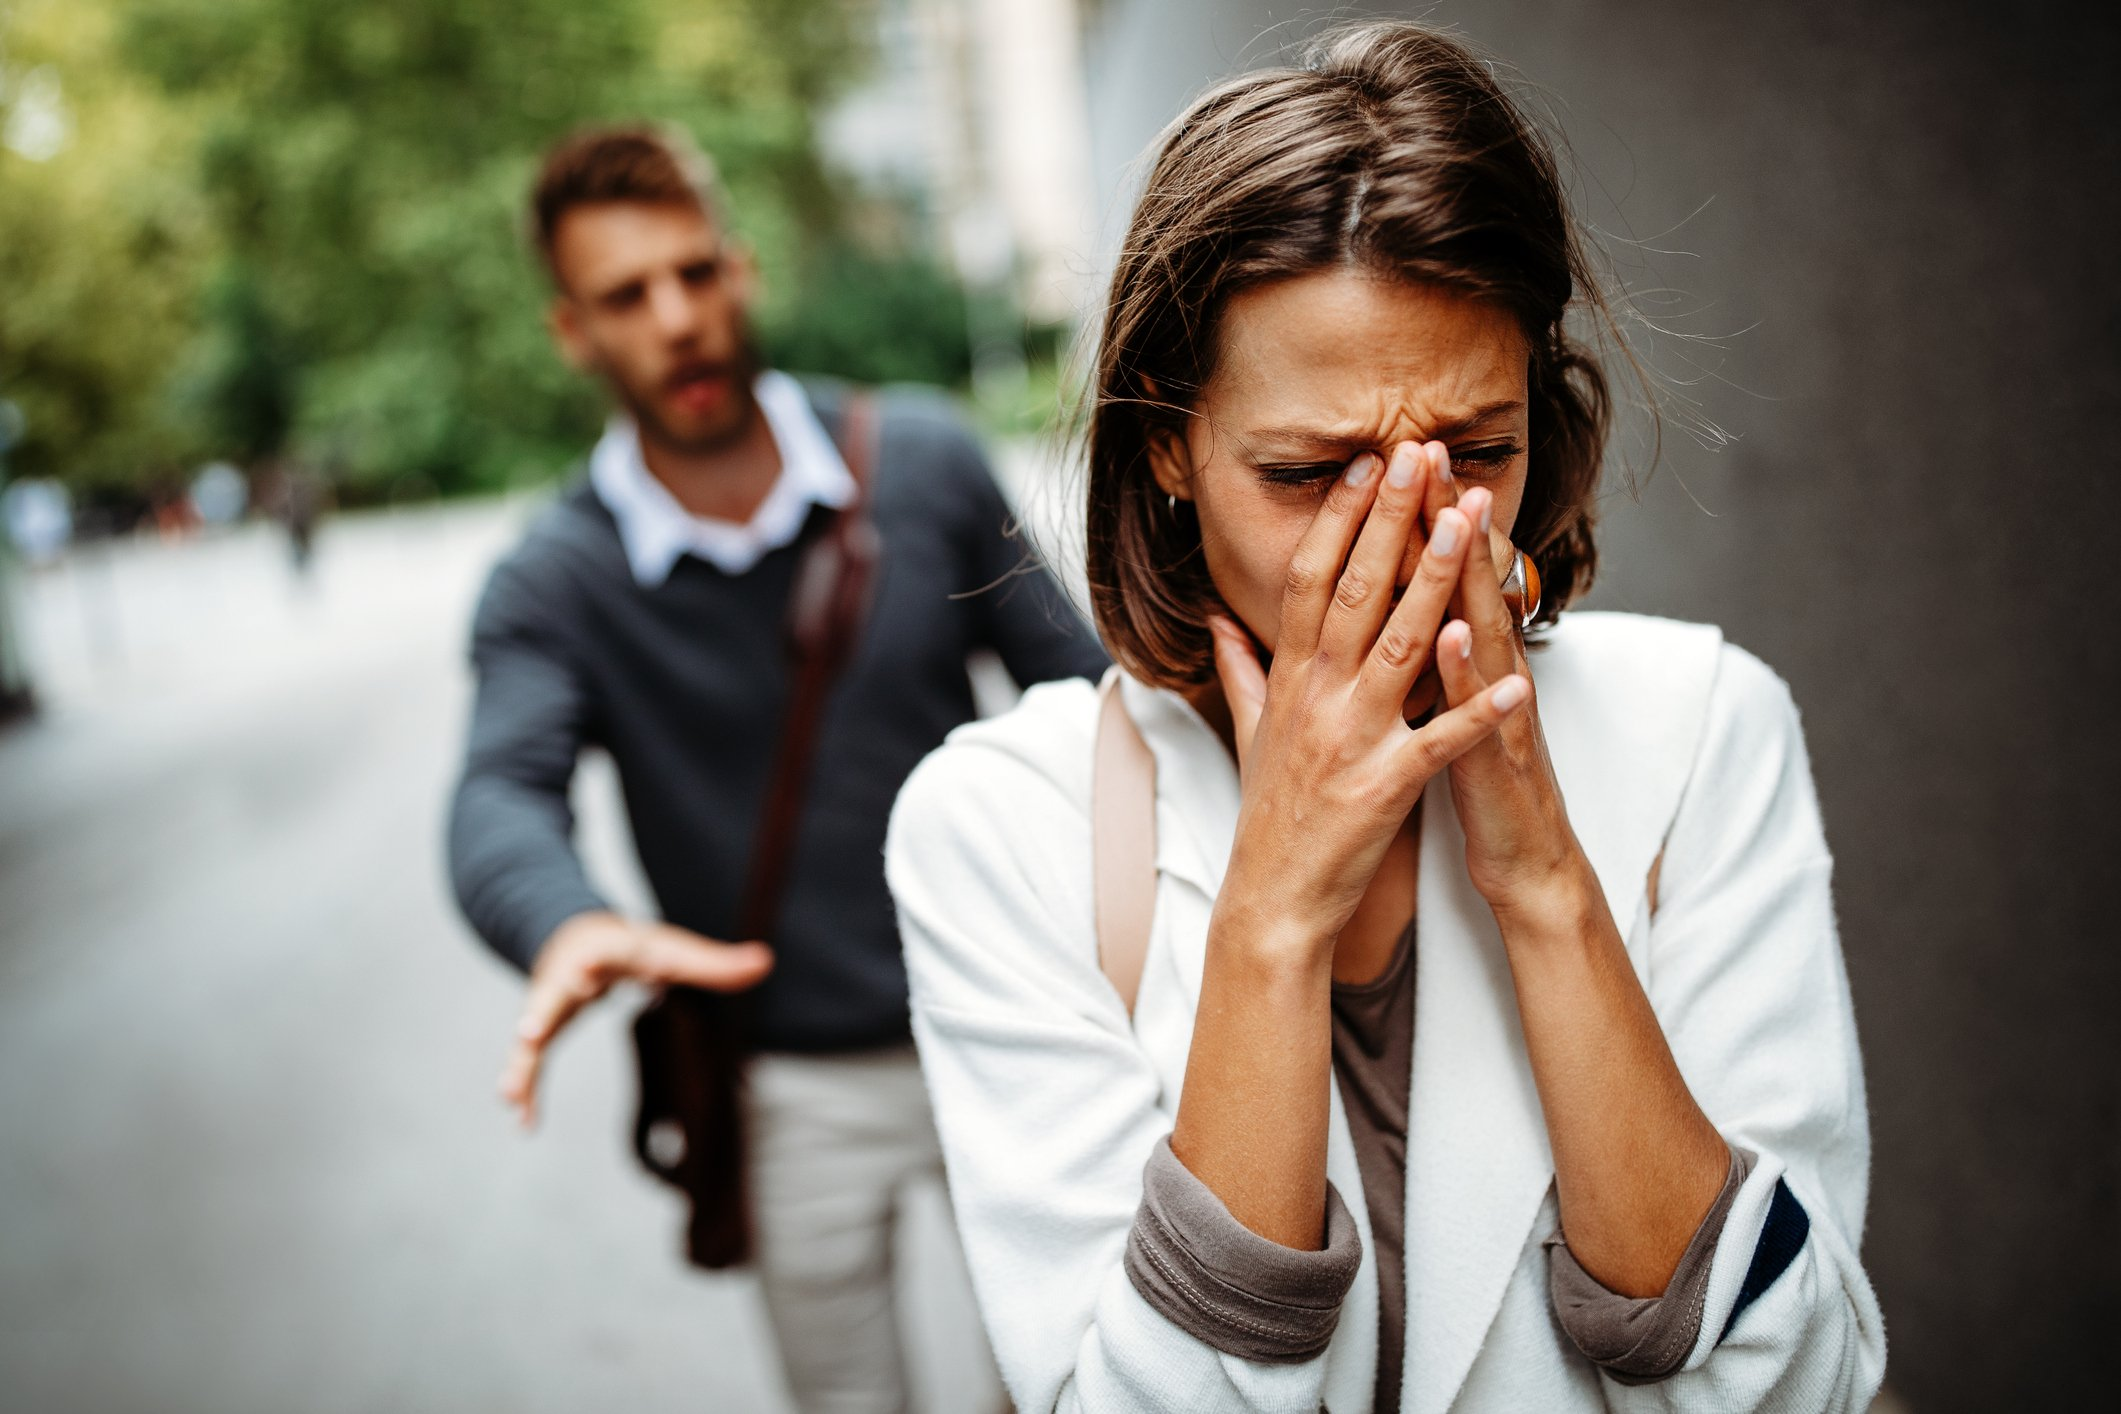 Couple break up over a miscommunication   Photo: Getty Images